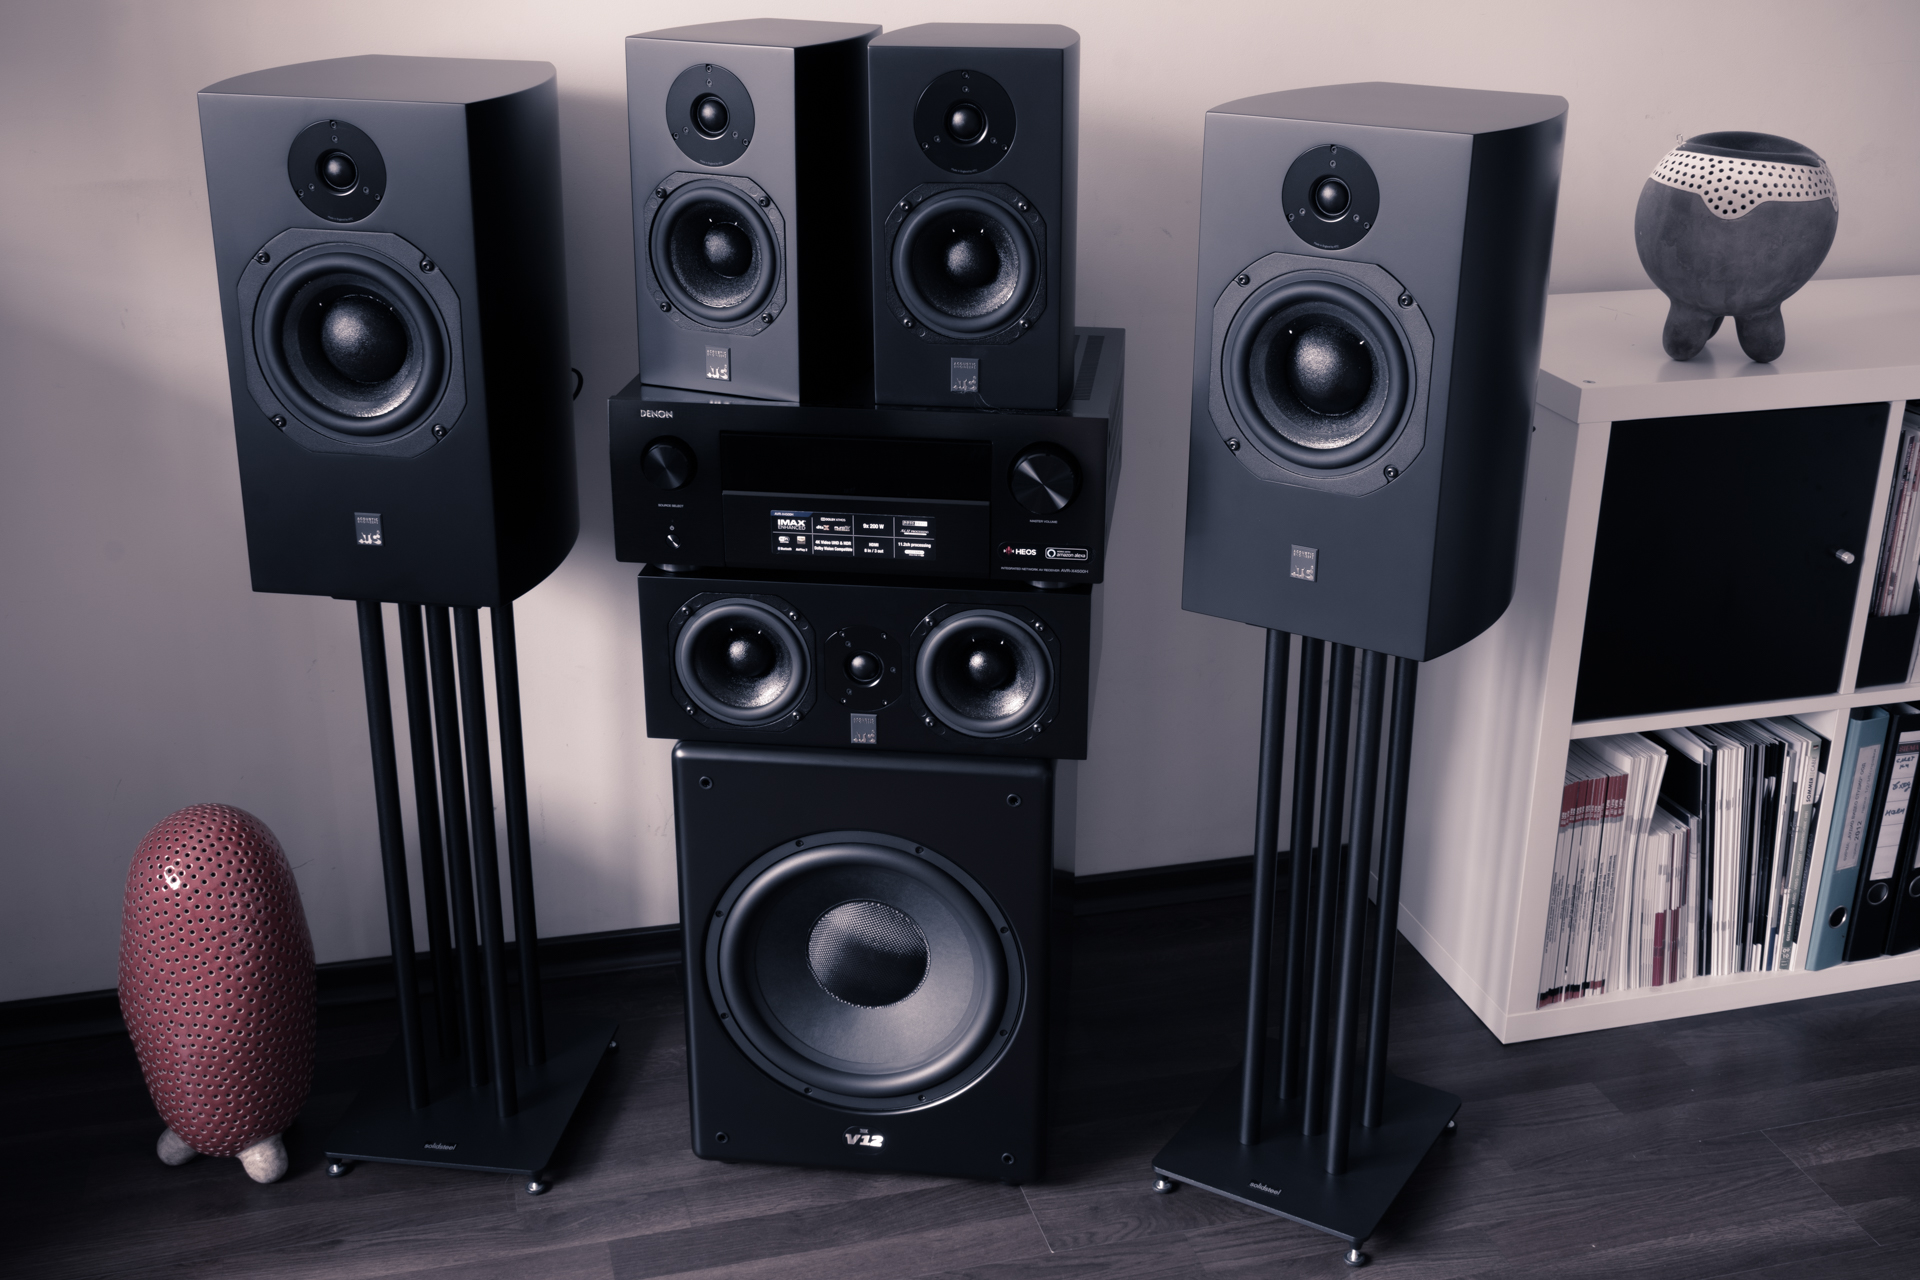 atc scm19 scm7 loudspeakers mk sound v12 subwoofer home theater